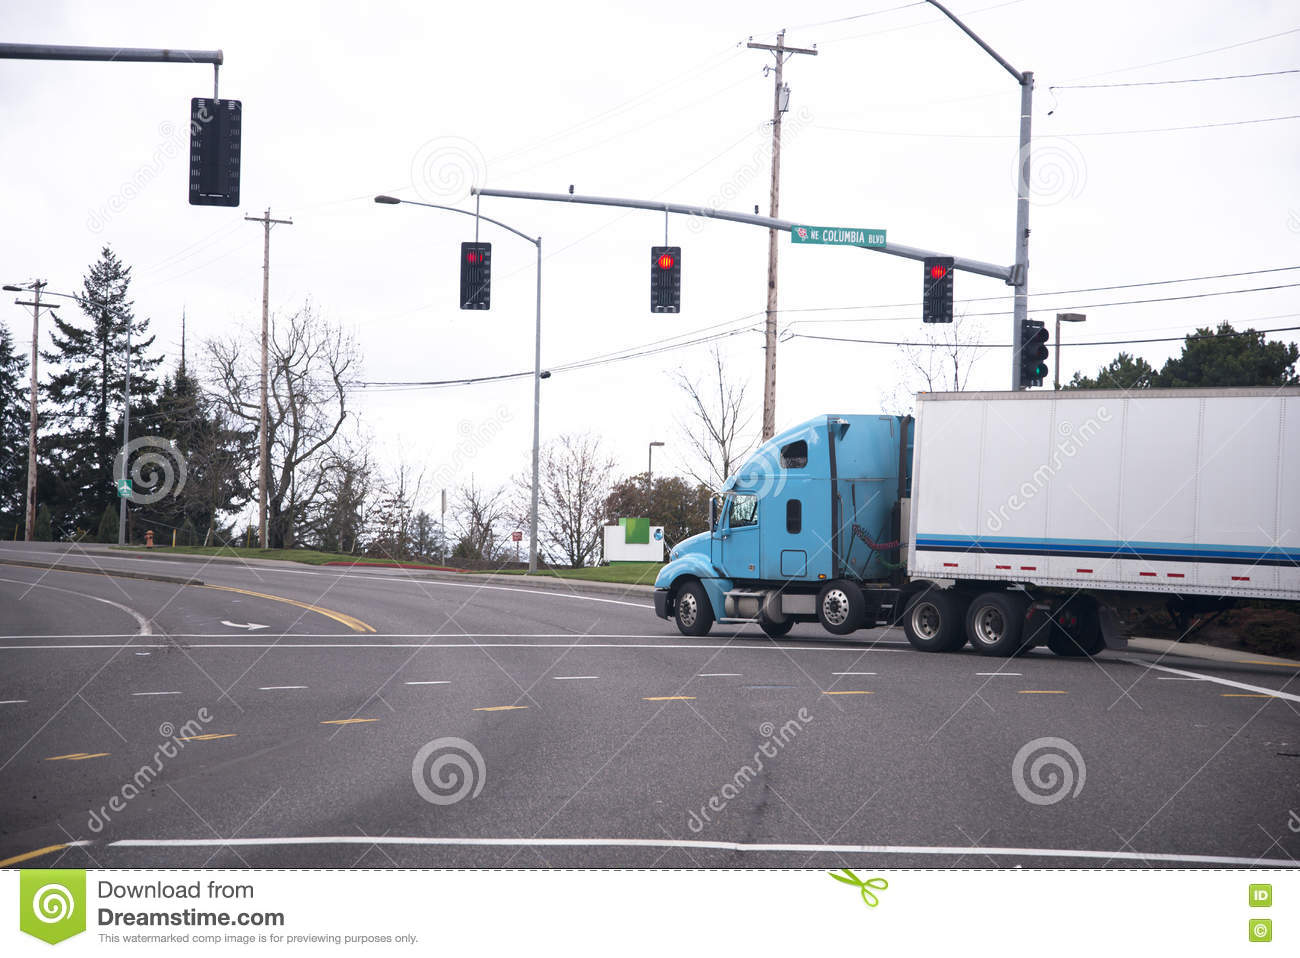 Download Blue Semi Truck And Trailer On Road With Traffic Lights Stock  Image   Image Of